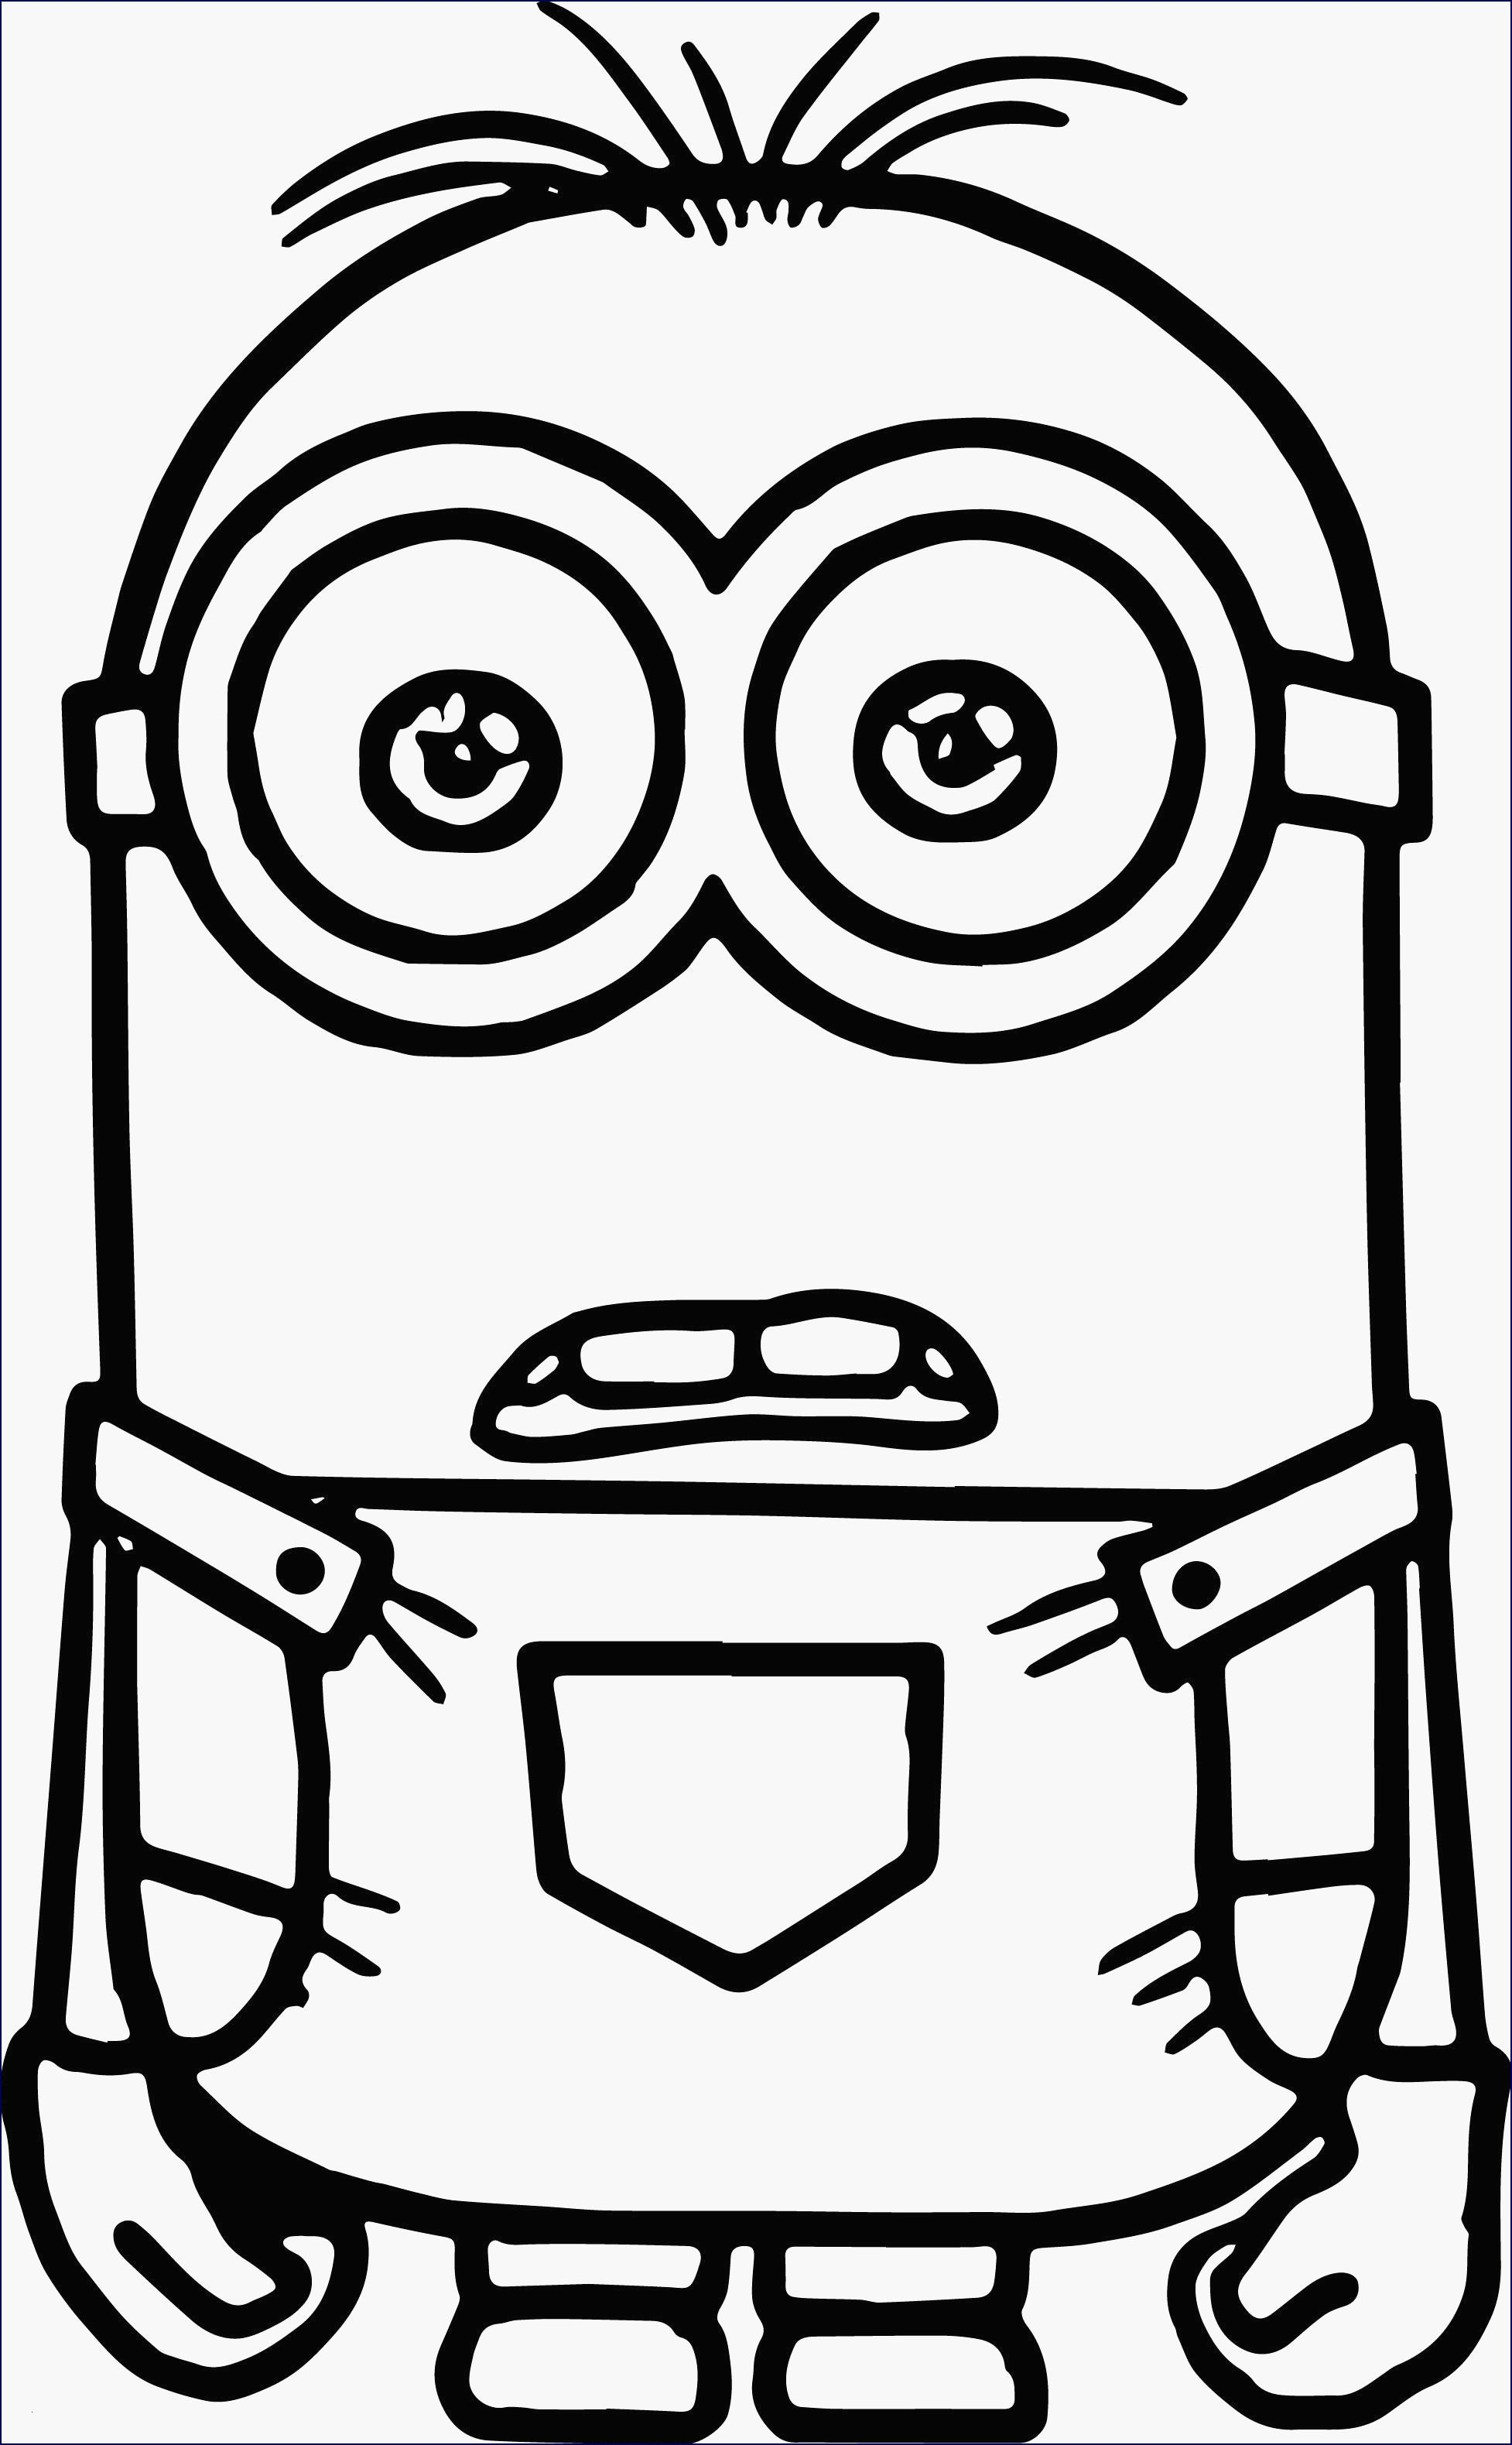 80 Elegant Image Of Minion Coloring Sheets Check More At Https Www Mercerepc Com Minion Co Minion Coloring Pages Disney Coloring Pages Minions Coloring Pages